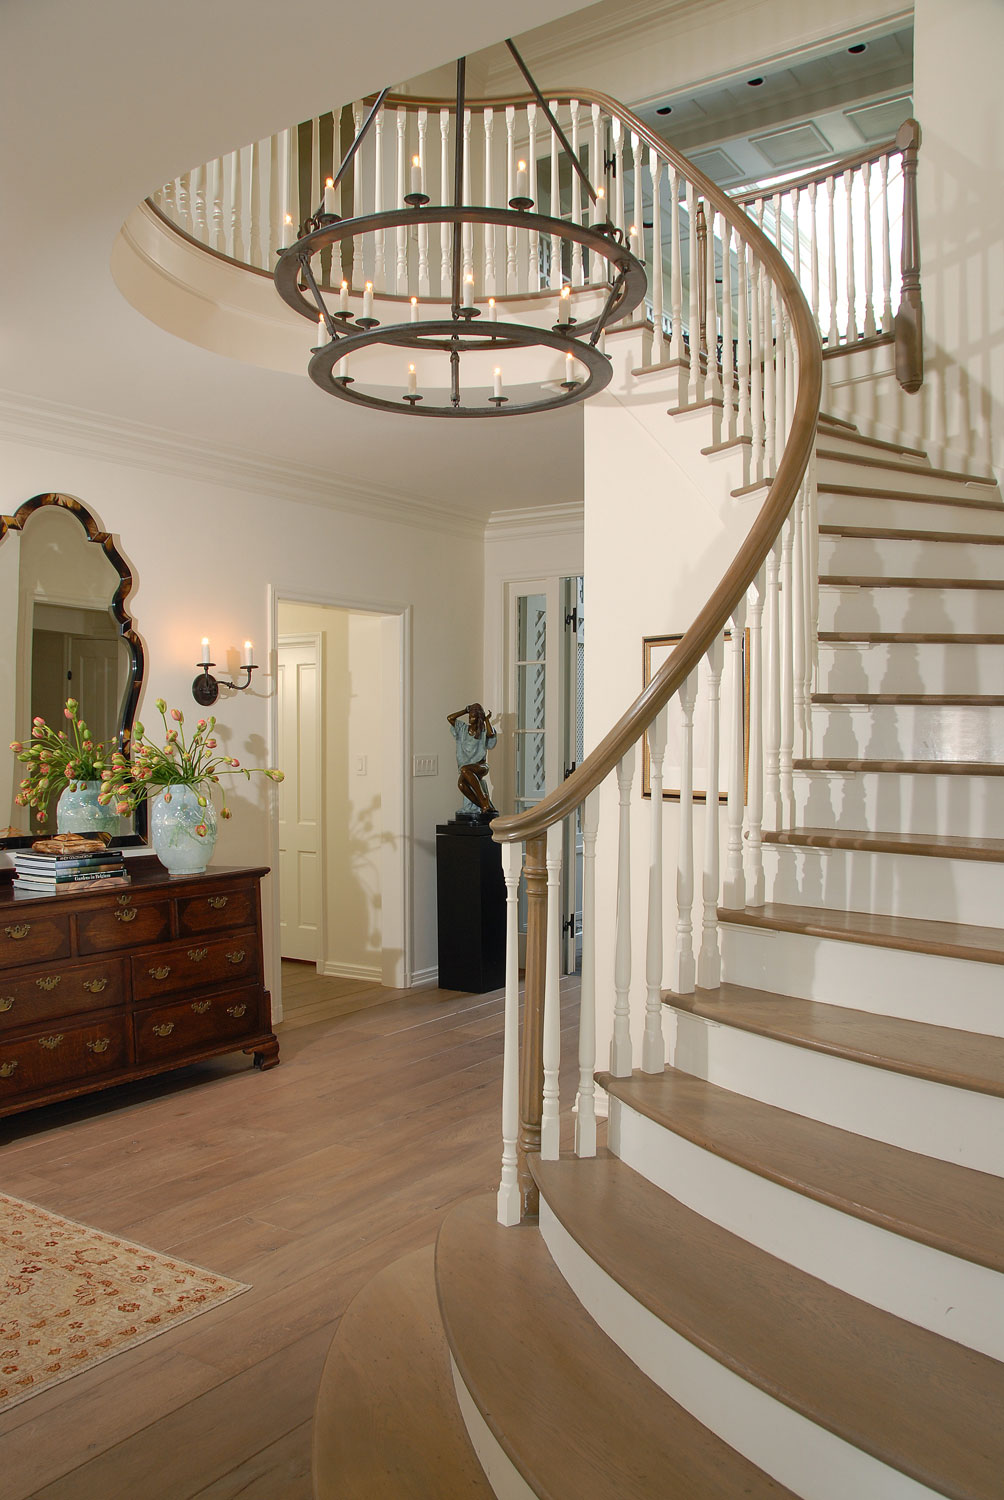 05-Z-traditional-staircase-curved-bannister-gary-drake-general-contractor.jpg